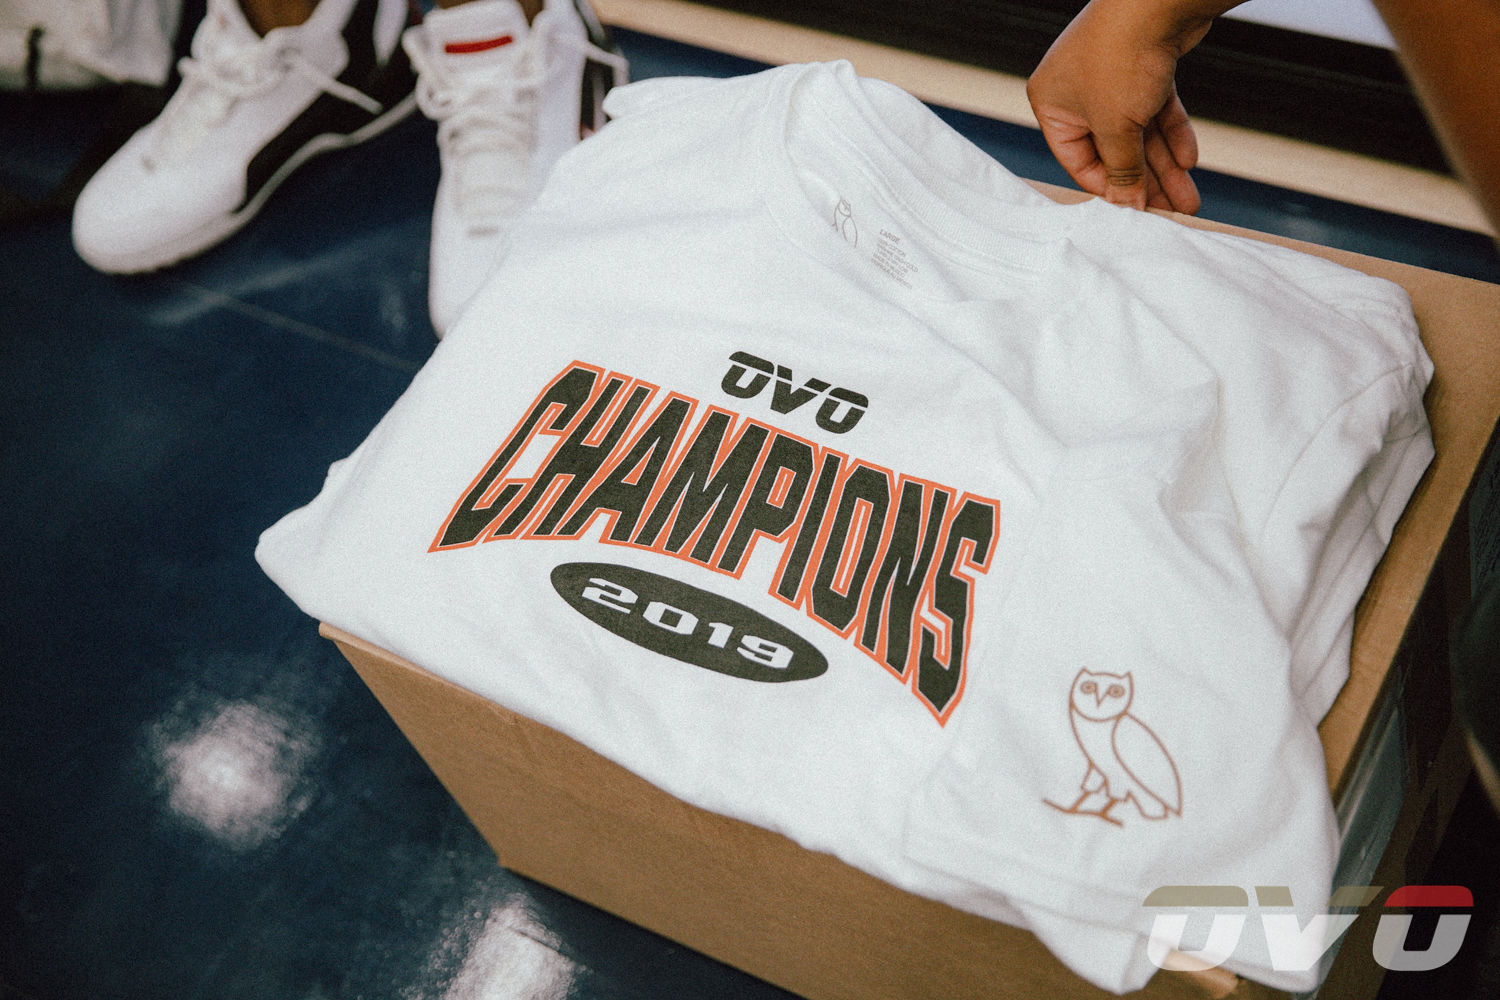 2019 Champions - OVO wins its 4th title at 6th annual OVO Basketball